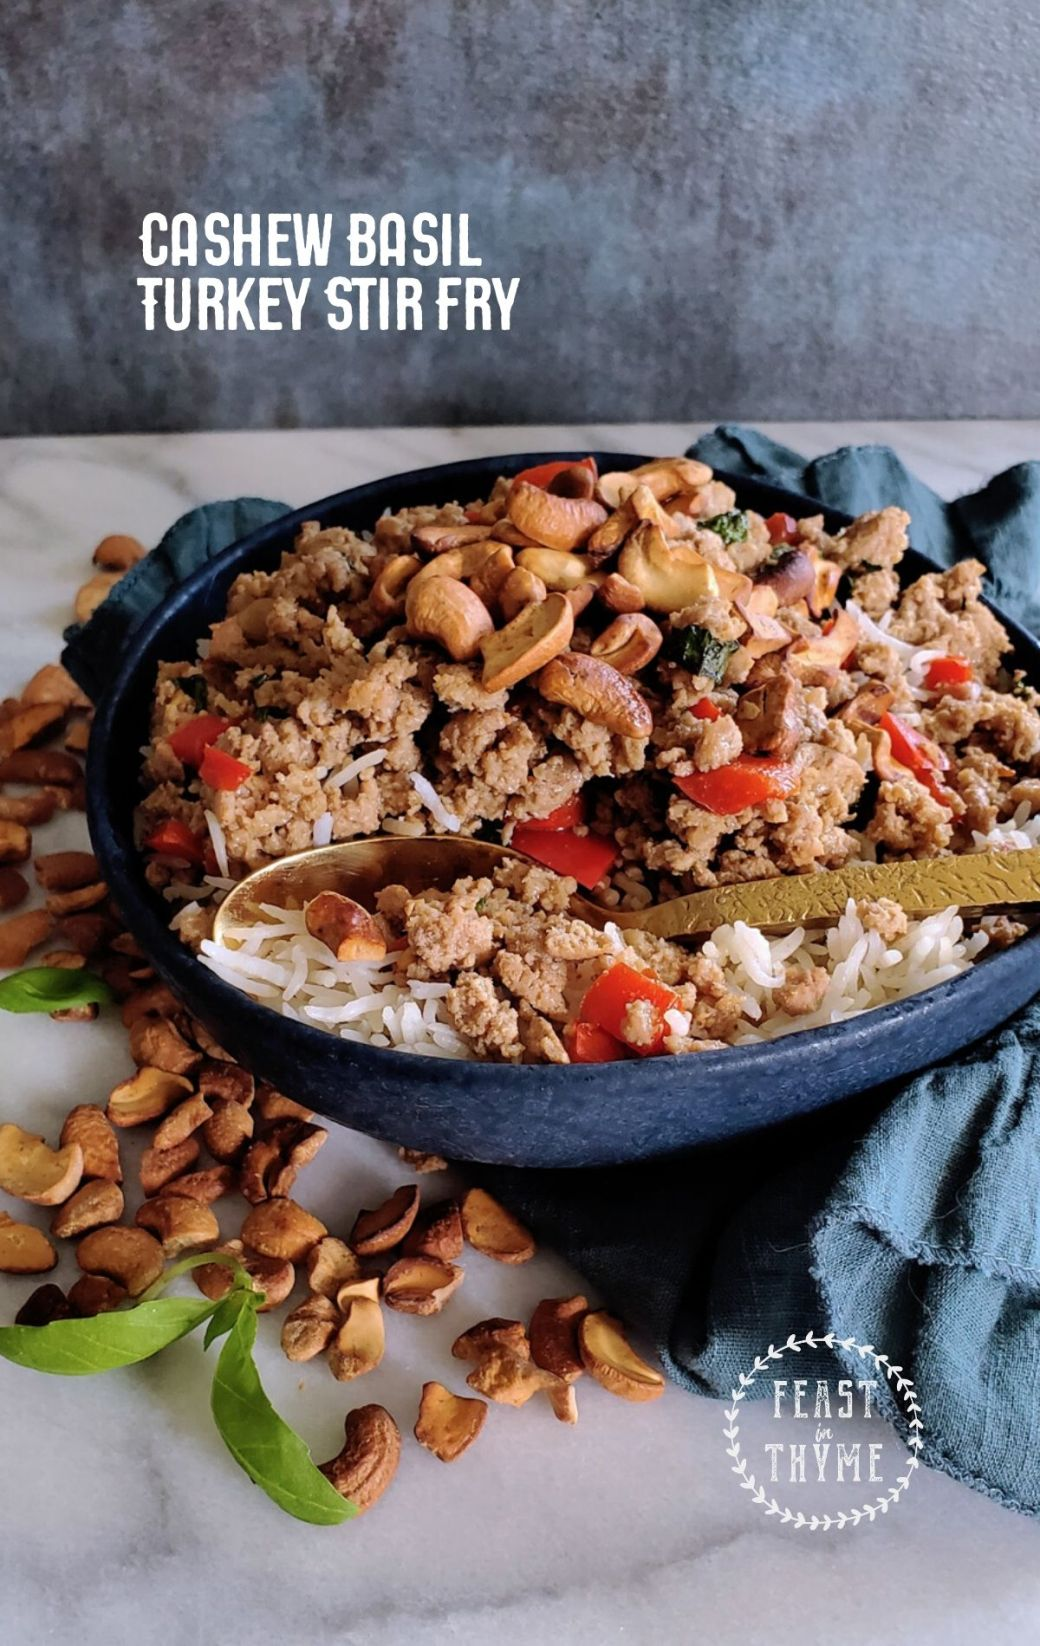 Cashew Basil Turkey Stir Fry